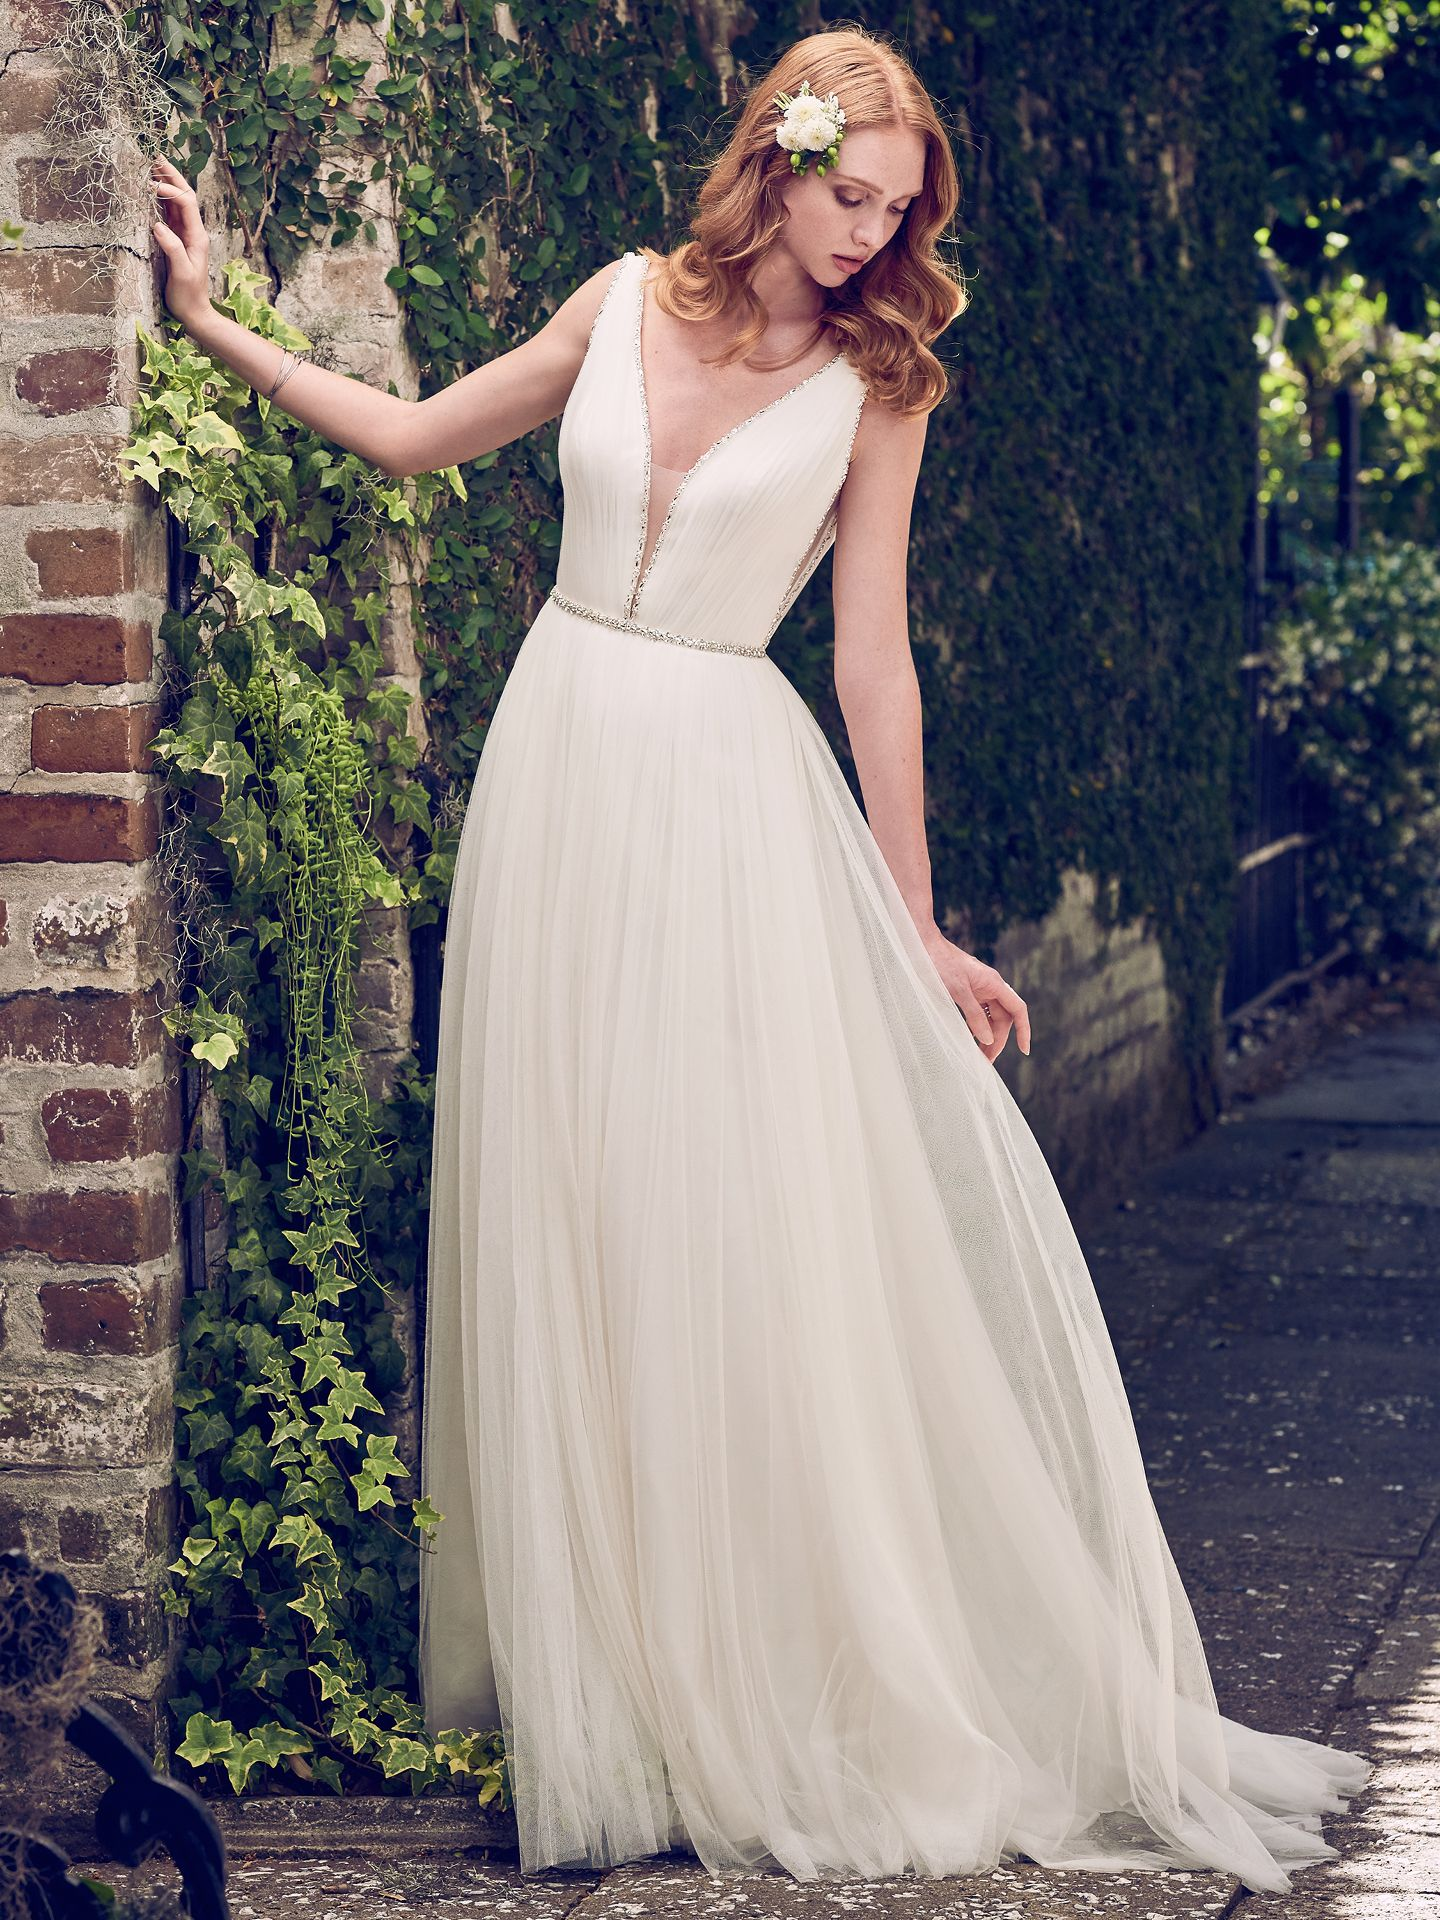 Wedding Gowns that Look Great in Photos - Tamar tulle wedding dress by Maggie Sottero